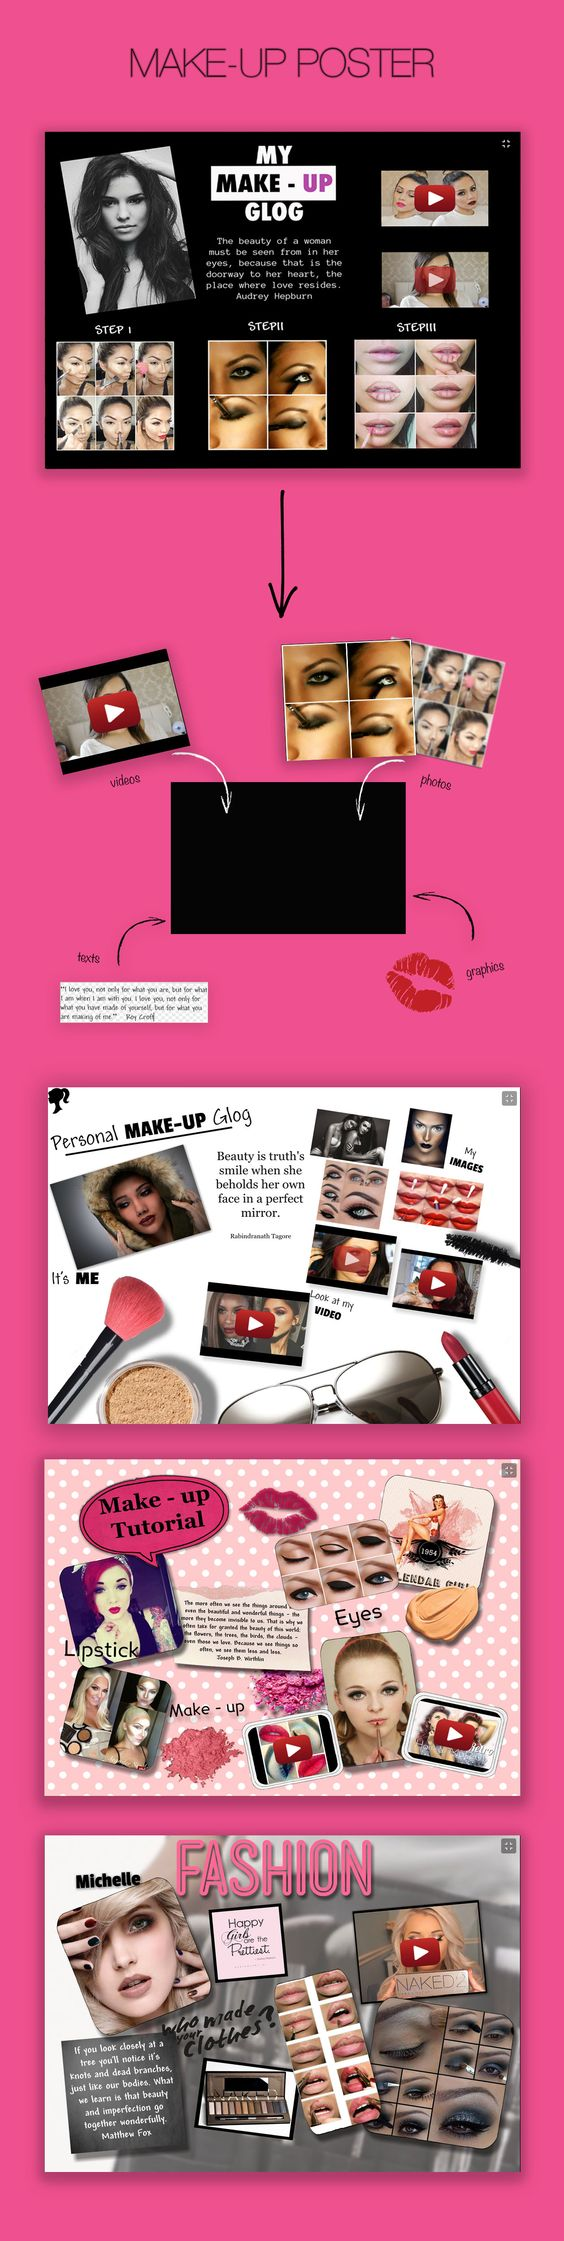 Make-up Poster #glogster #glogpedia #makeup